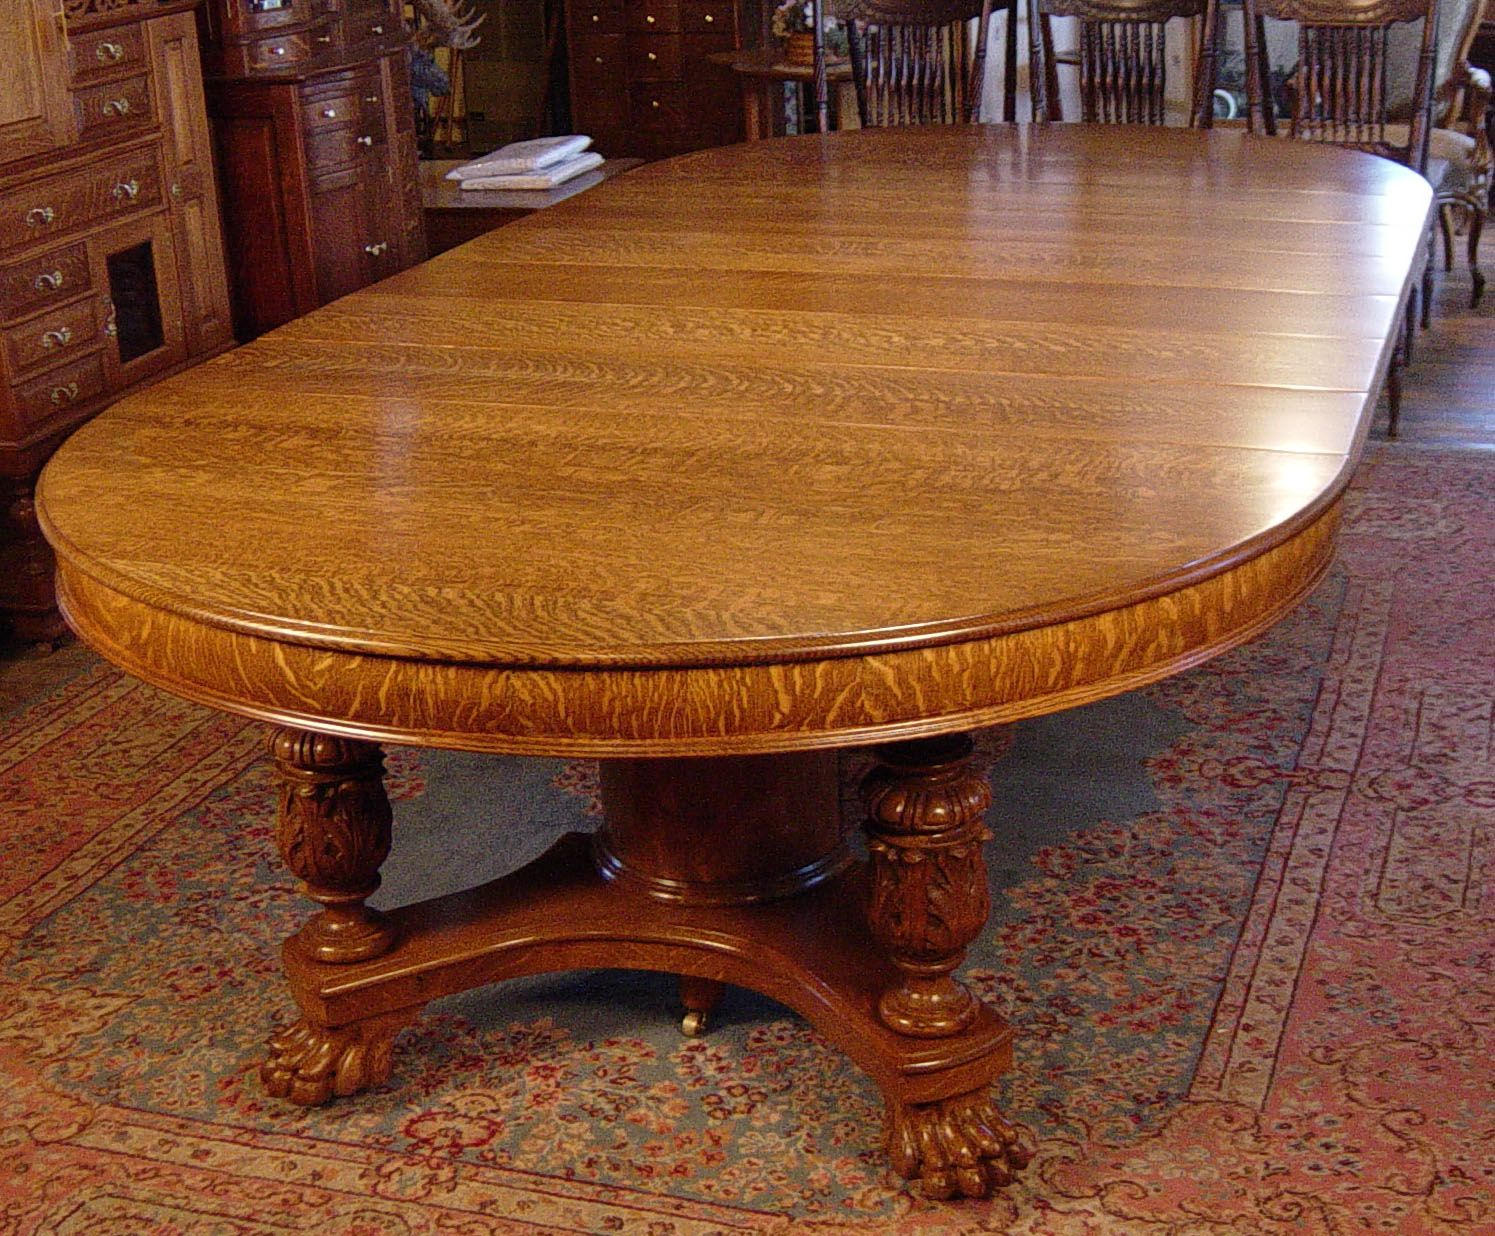 60 Round Oak Claw Foot Dining Table With 6 Original Leaves